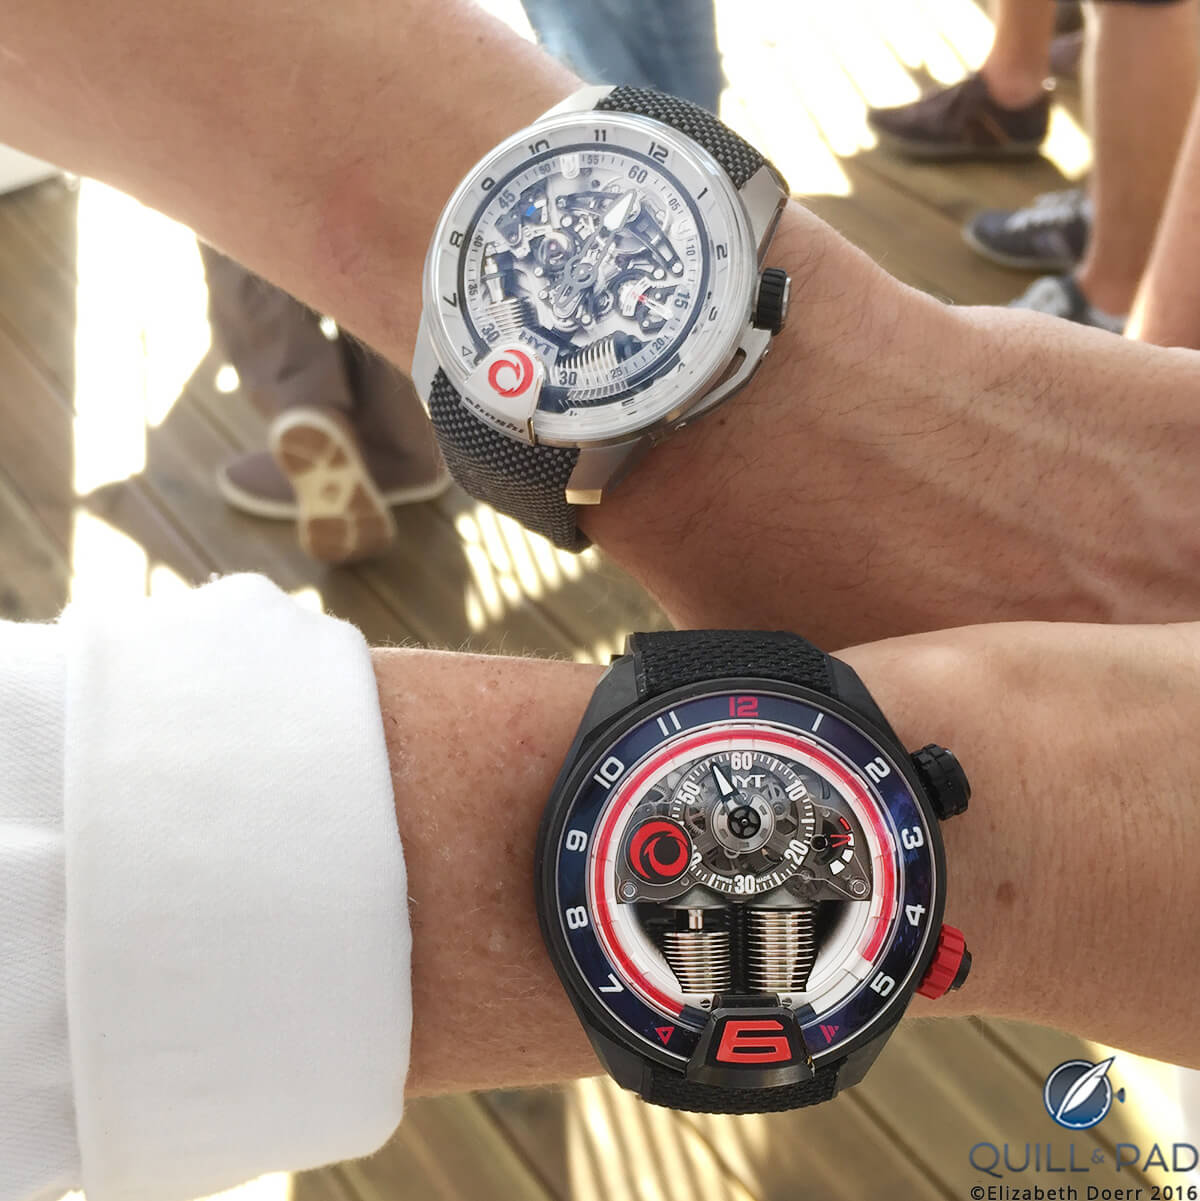 Double Trouble: HYT H2 Alinghi (top) and H4 Alinghi on the wrist